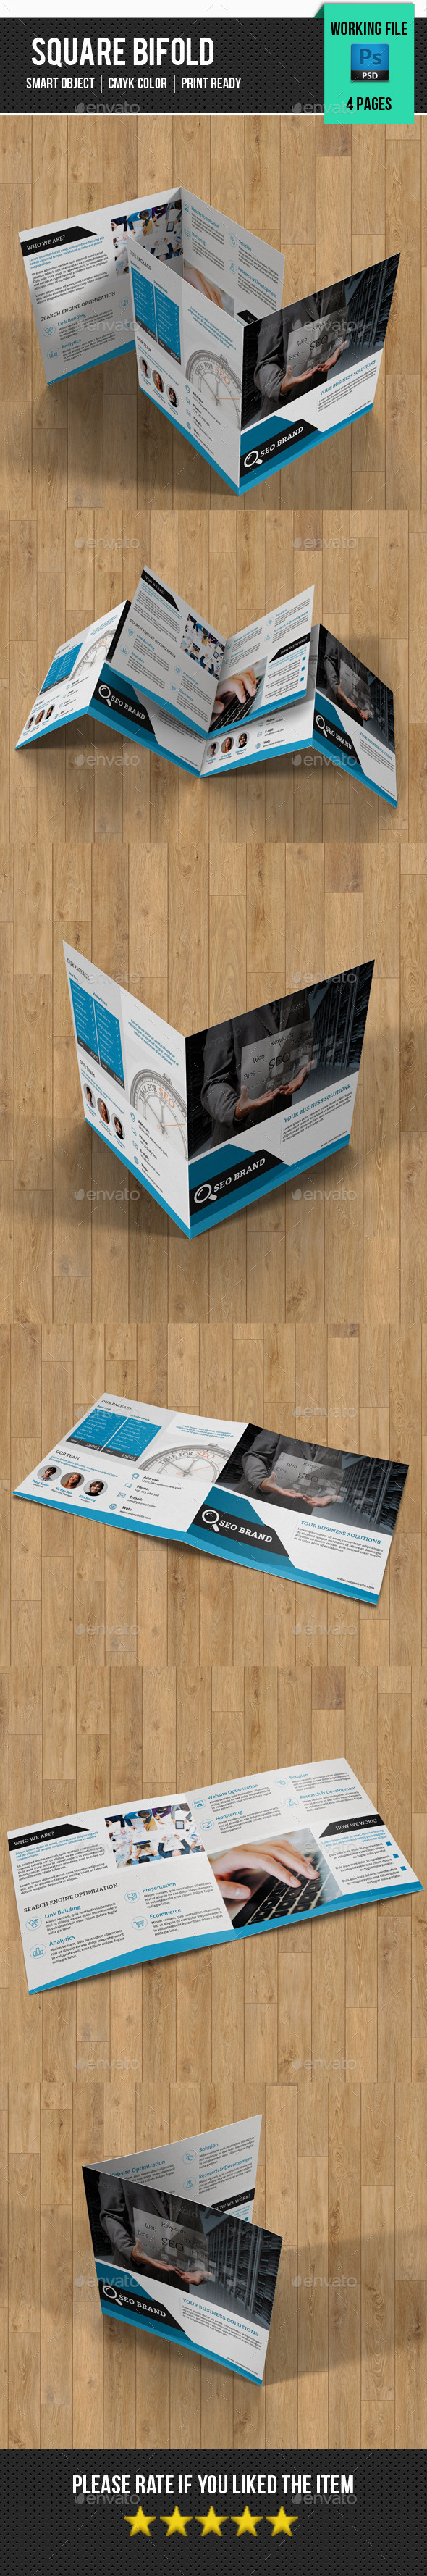 GraphicRiver Corporate Square Bifold-V24 11337437